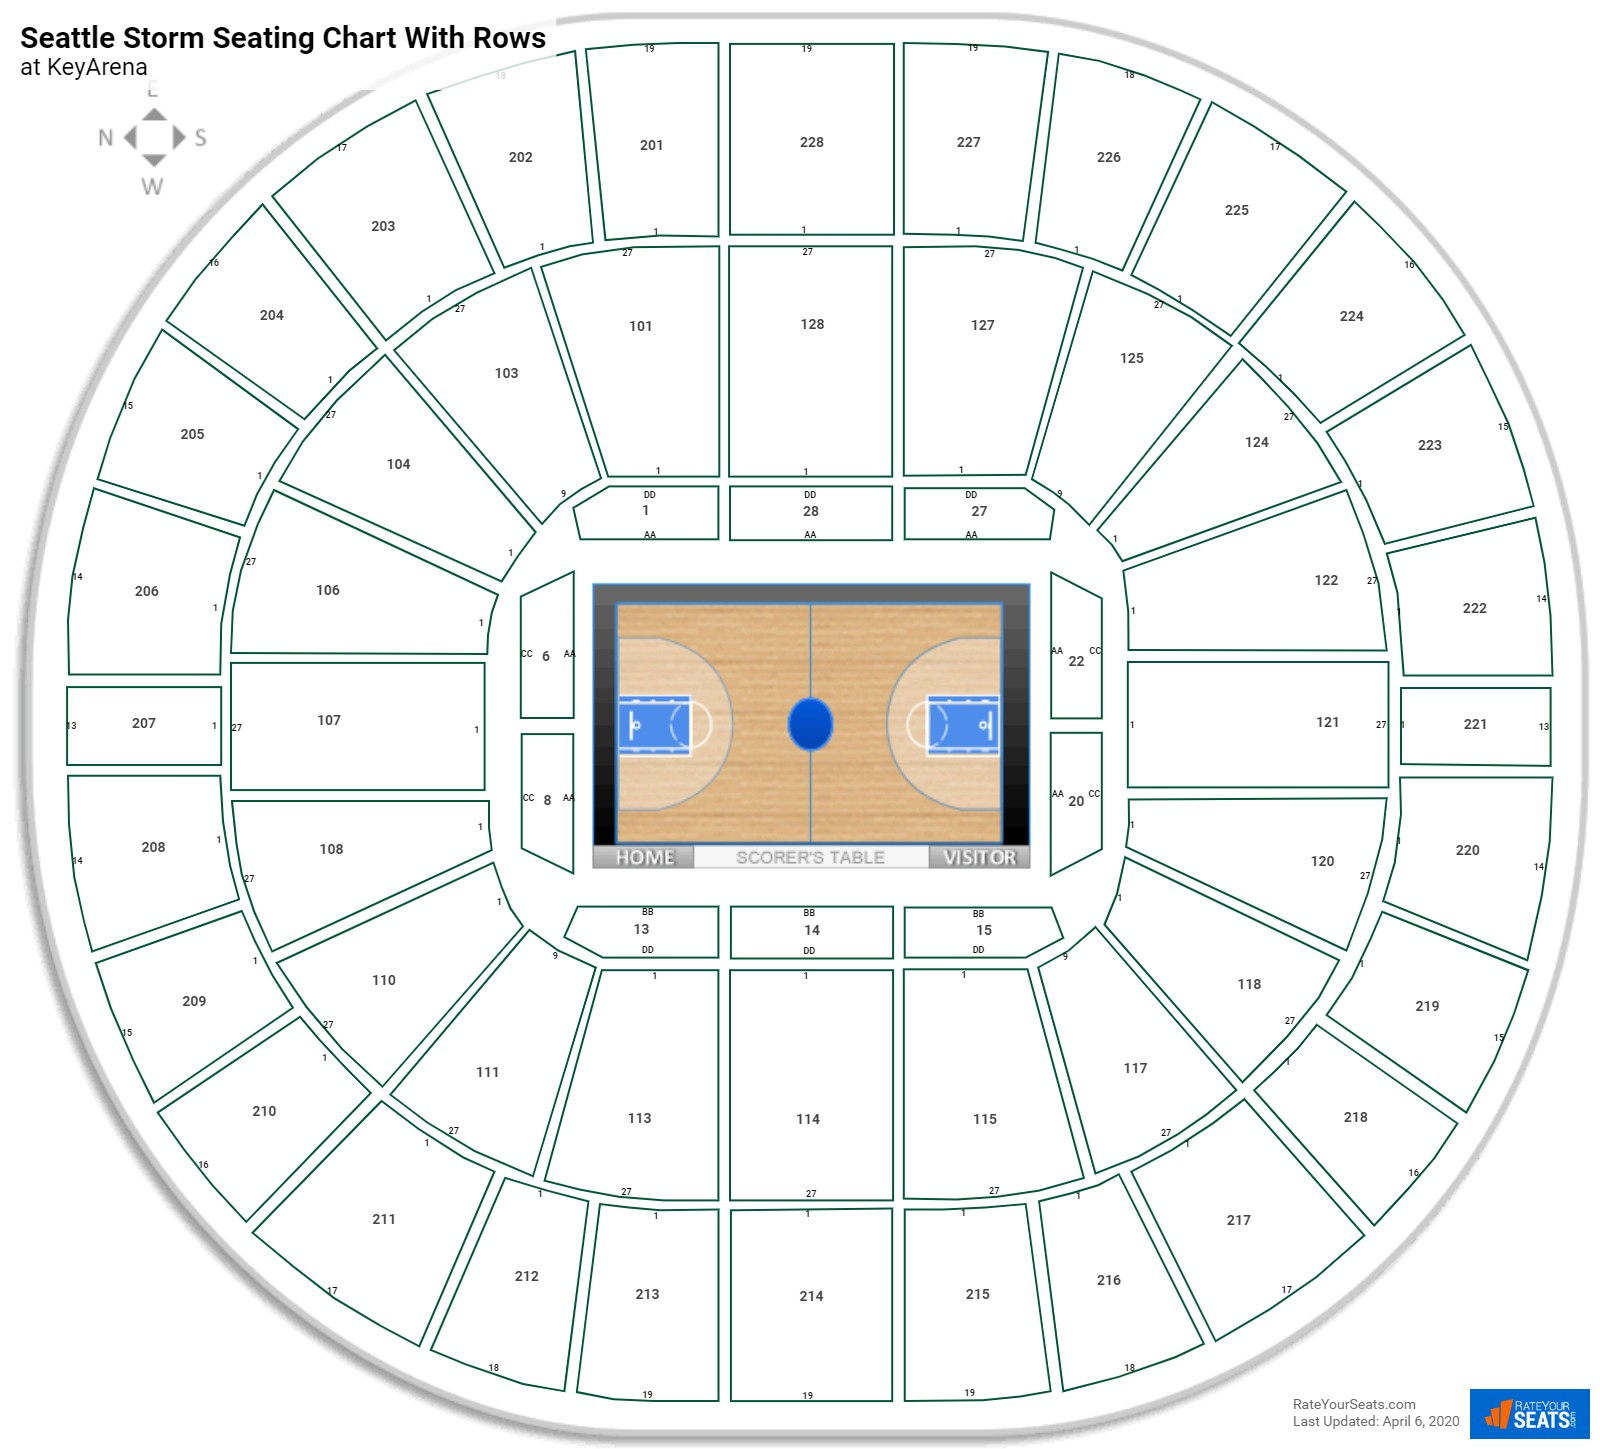 KeyArena seating chart with rows basketball